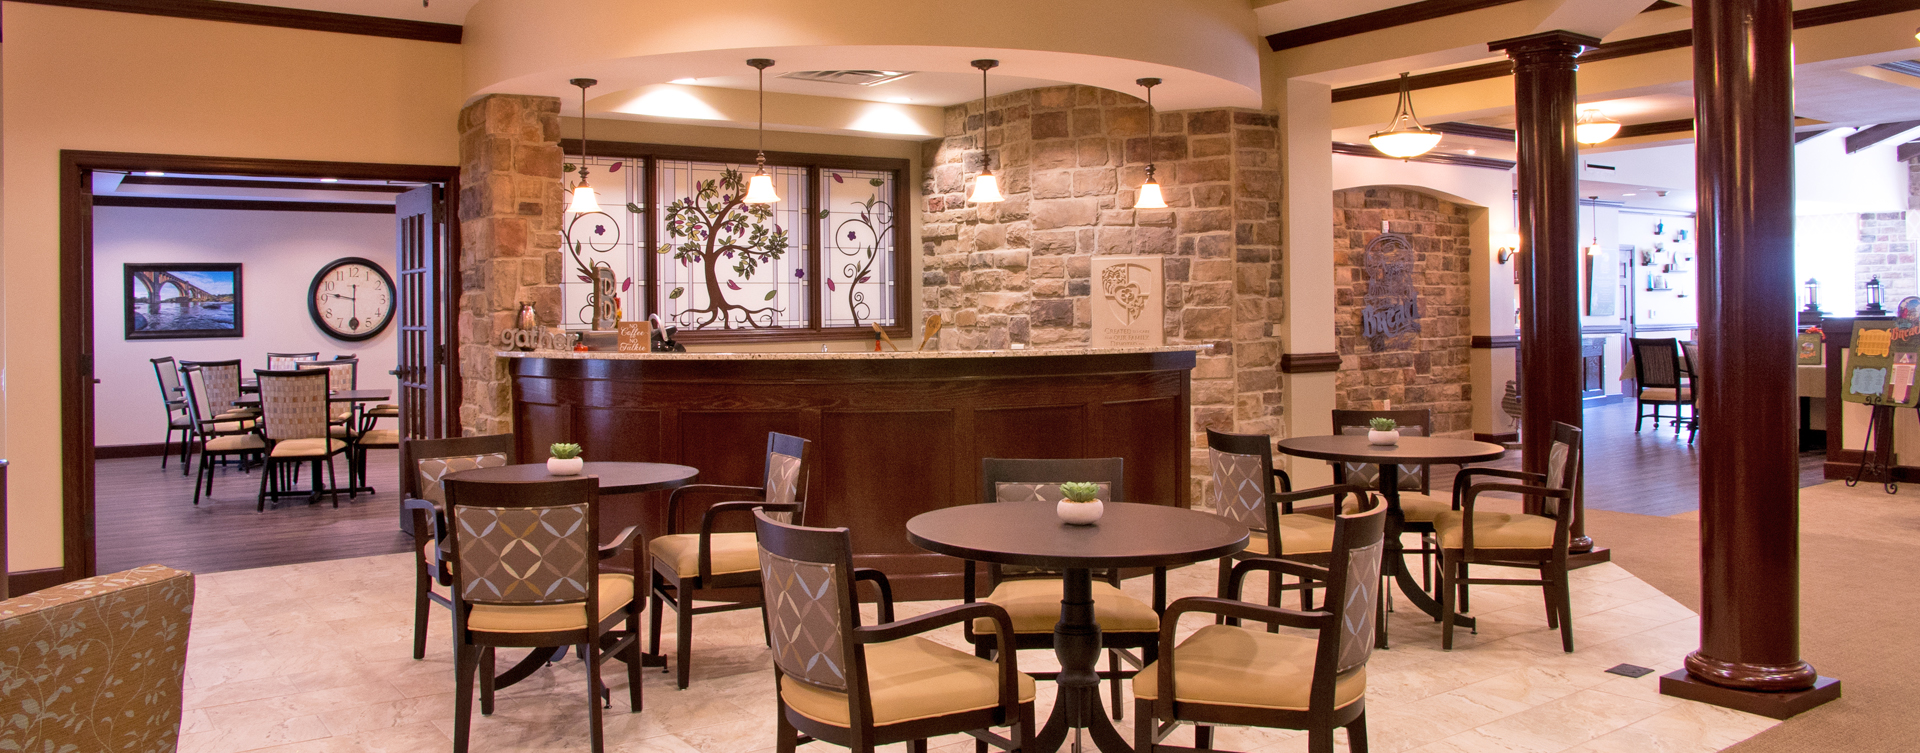 Intimate enough to entertain your closest family; you can even host your next get together in the bistro at Bickford of Chesterfield